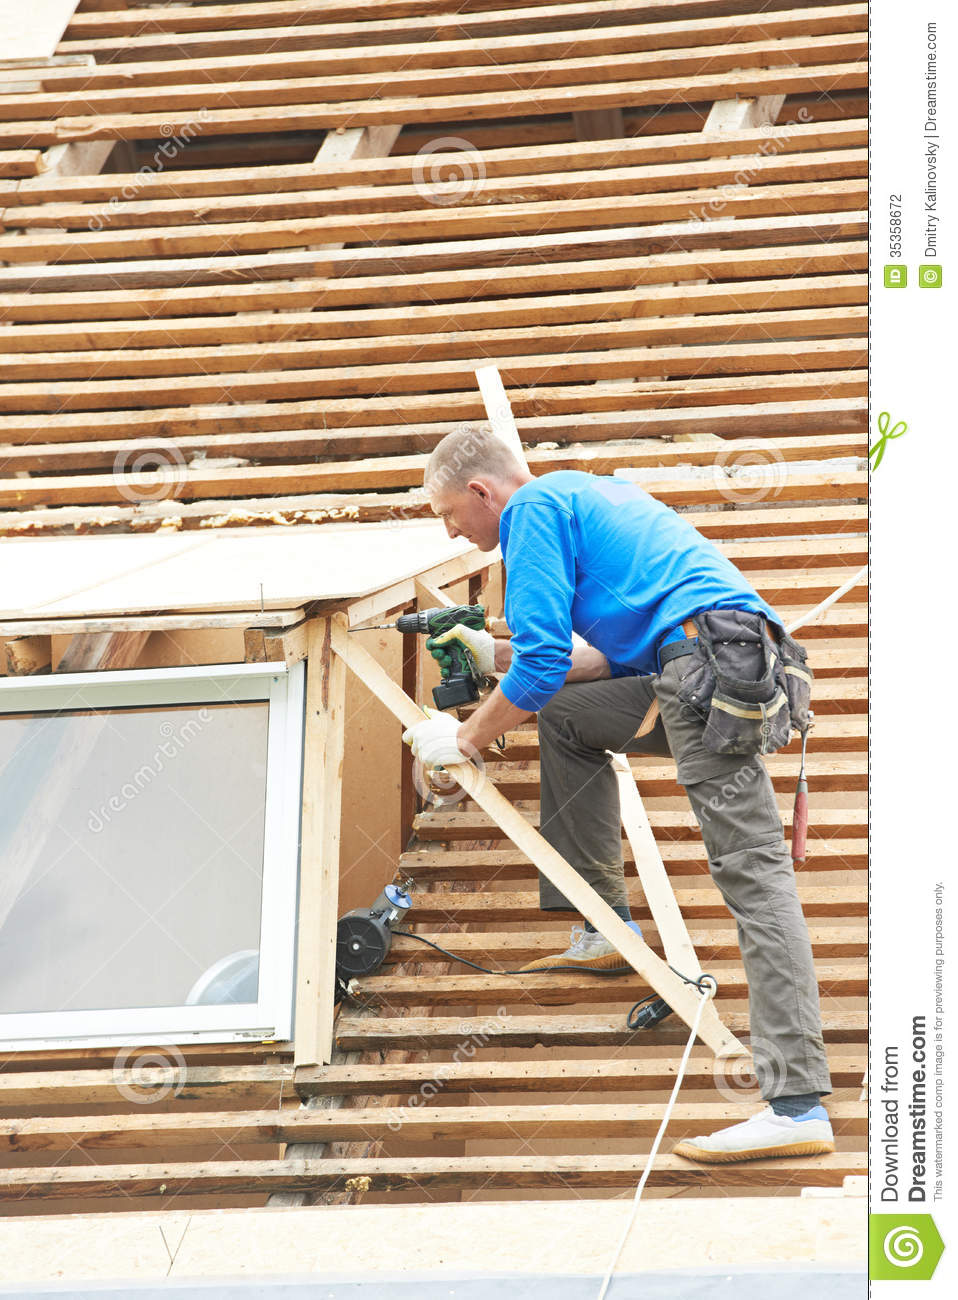 Roofing work with flex roof stock photography image for Flexible roofing material